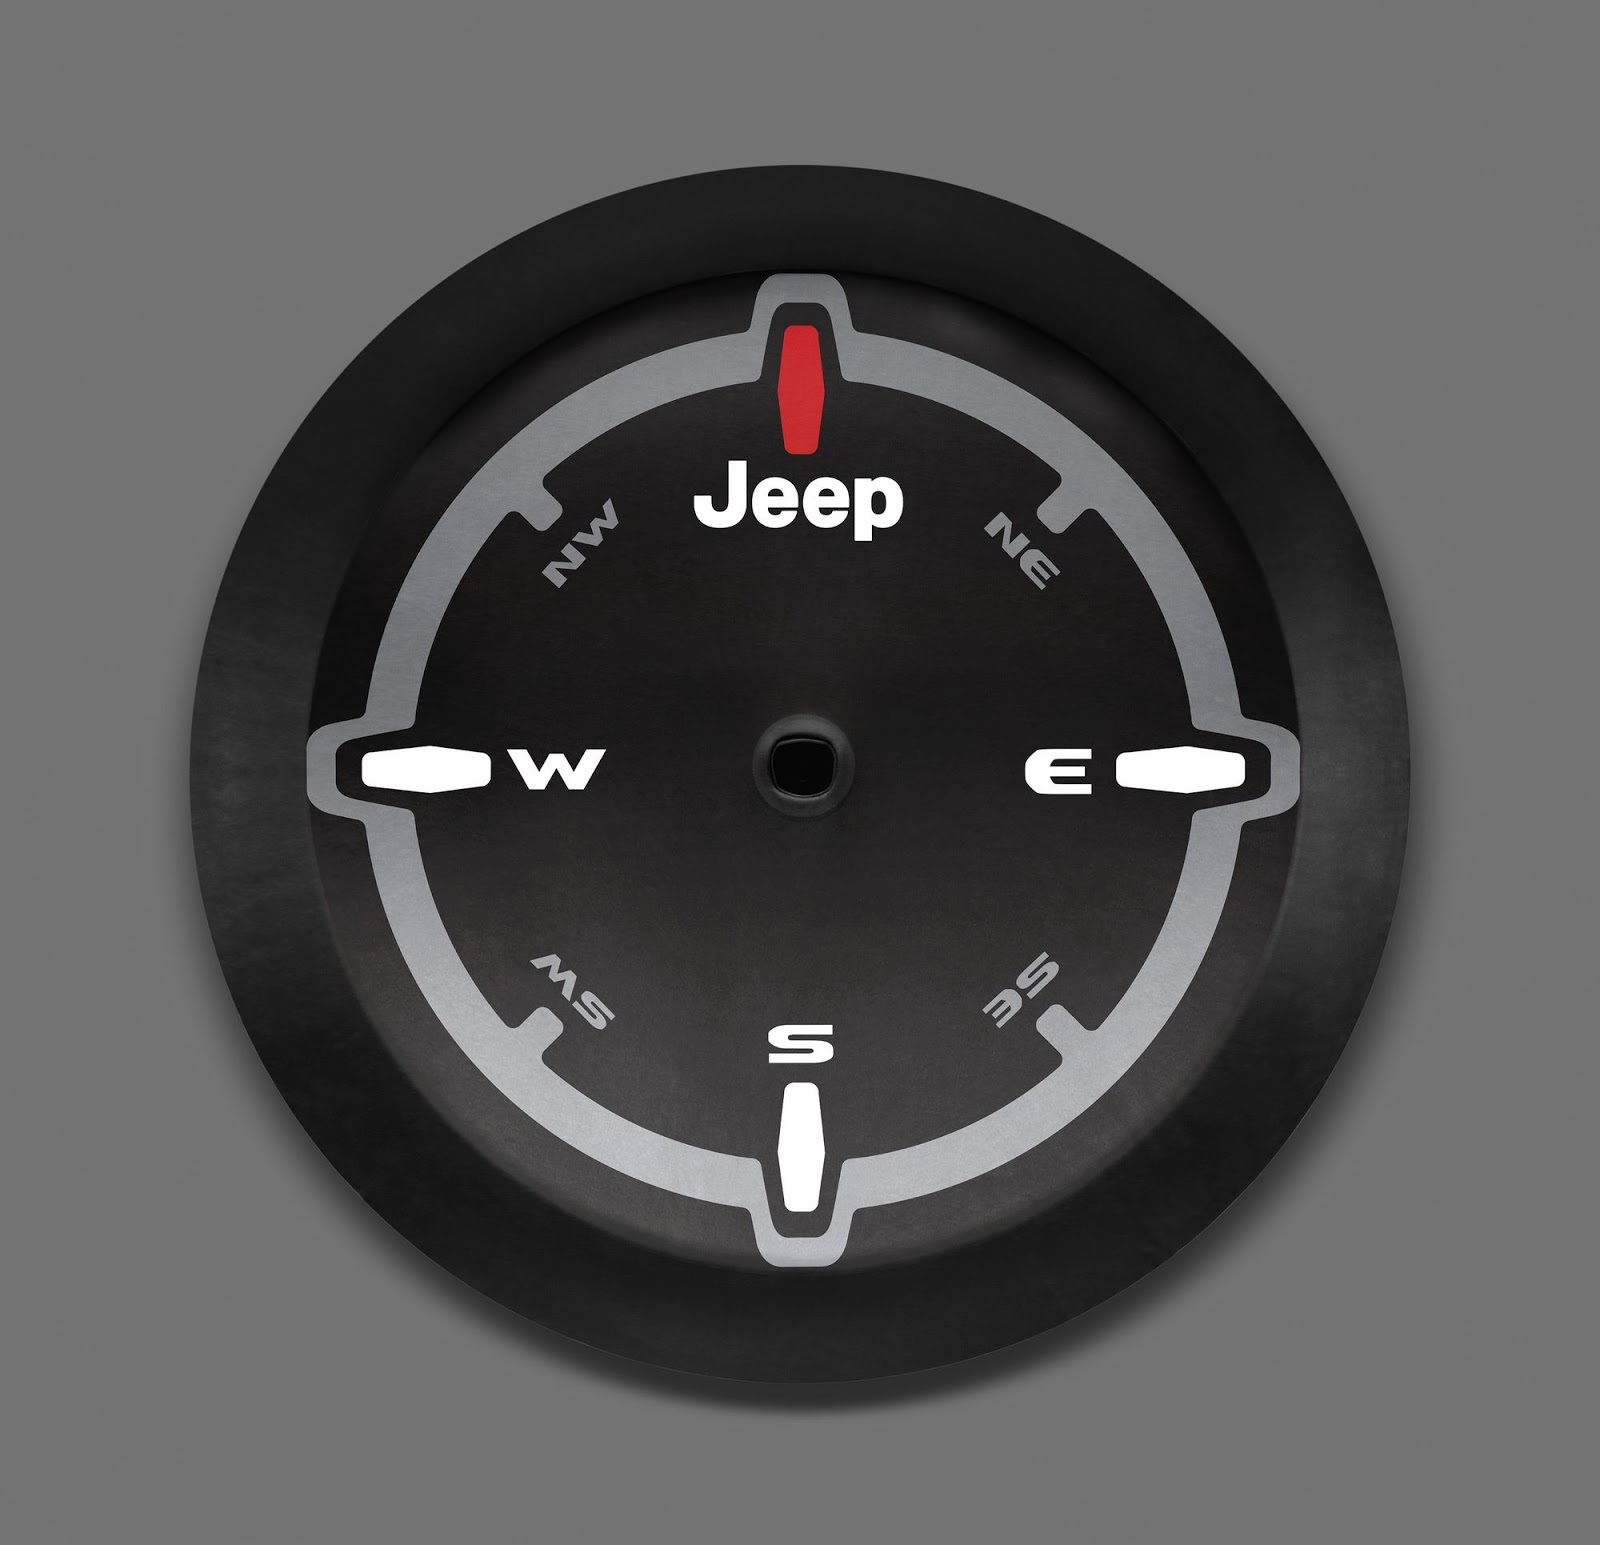 Mopar accessories for the all-new 2018 Jeep® Wrangler include tire covers redeveloped to accommodate the rearview camera and available in a variety of styles and designs.